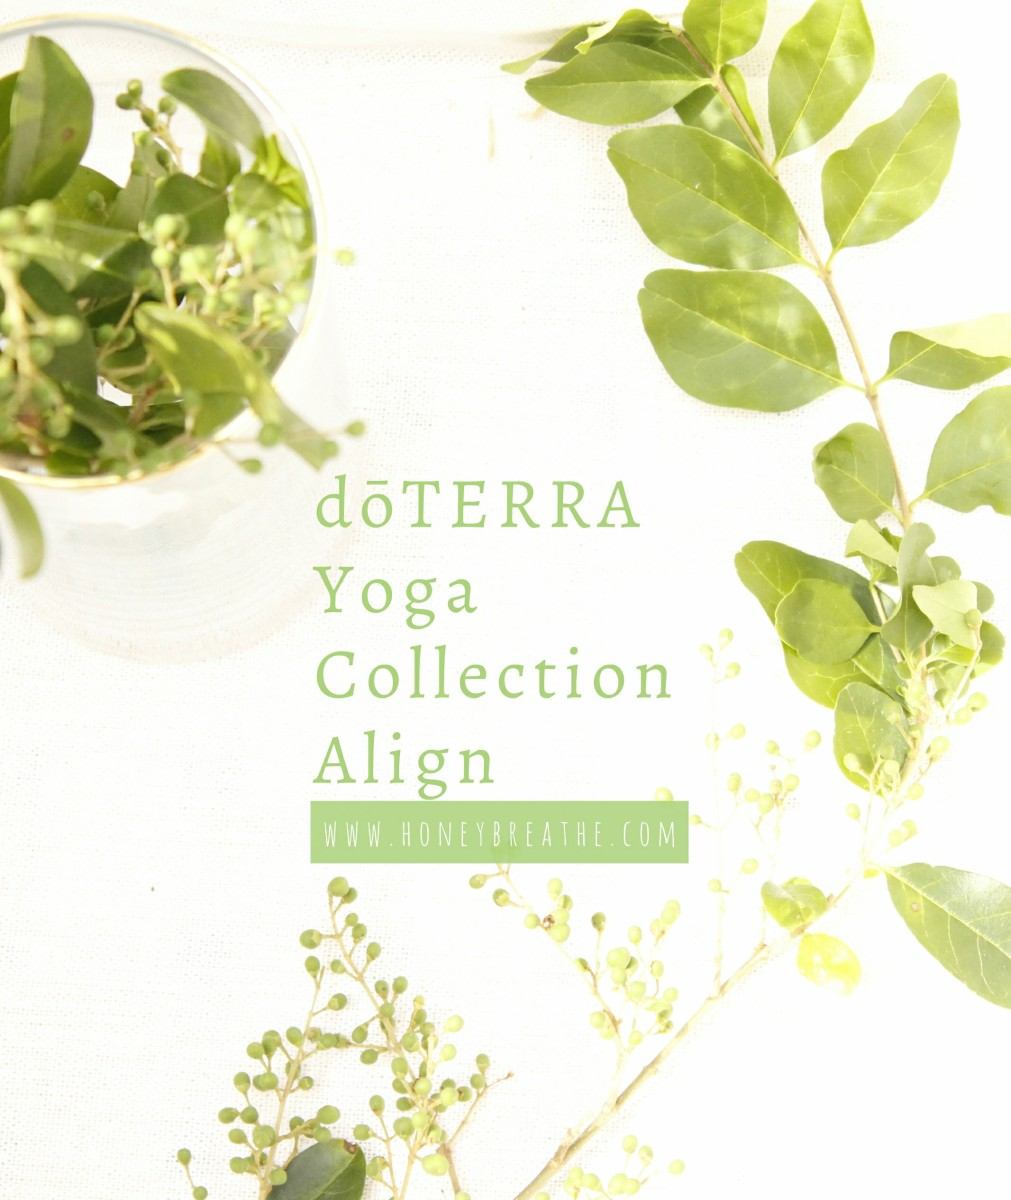 The dōTERRA Yoga Collection: Align